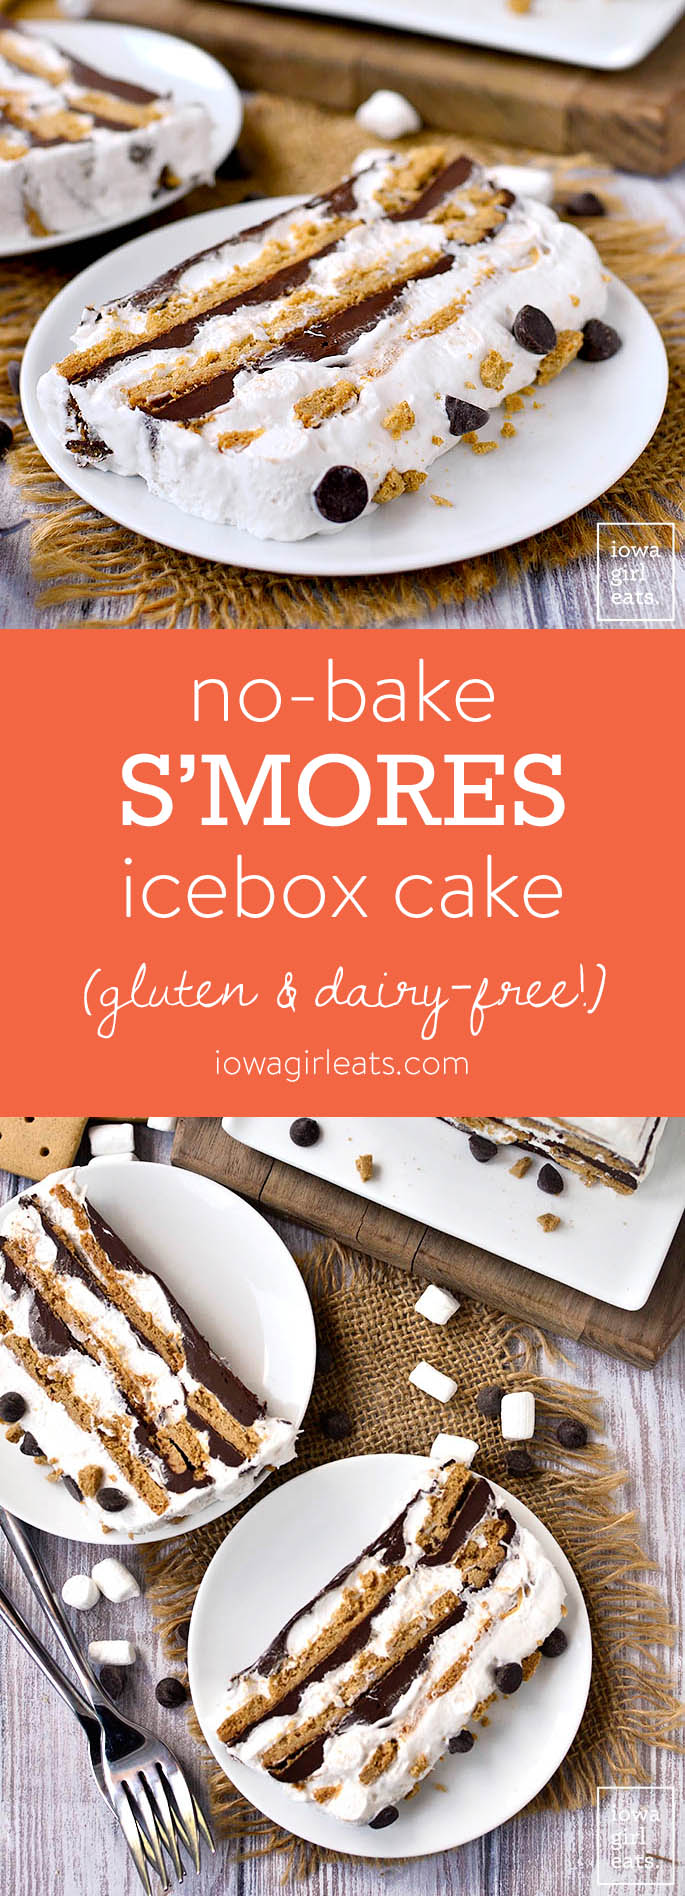 No-Bake S'mores Icebox Cake is a gluten-free and dairy-free dessert recipe that will be a hit with kids and adults alike. Sticky and sweet, just like the real thing! | iowagirleats.com